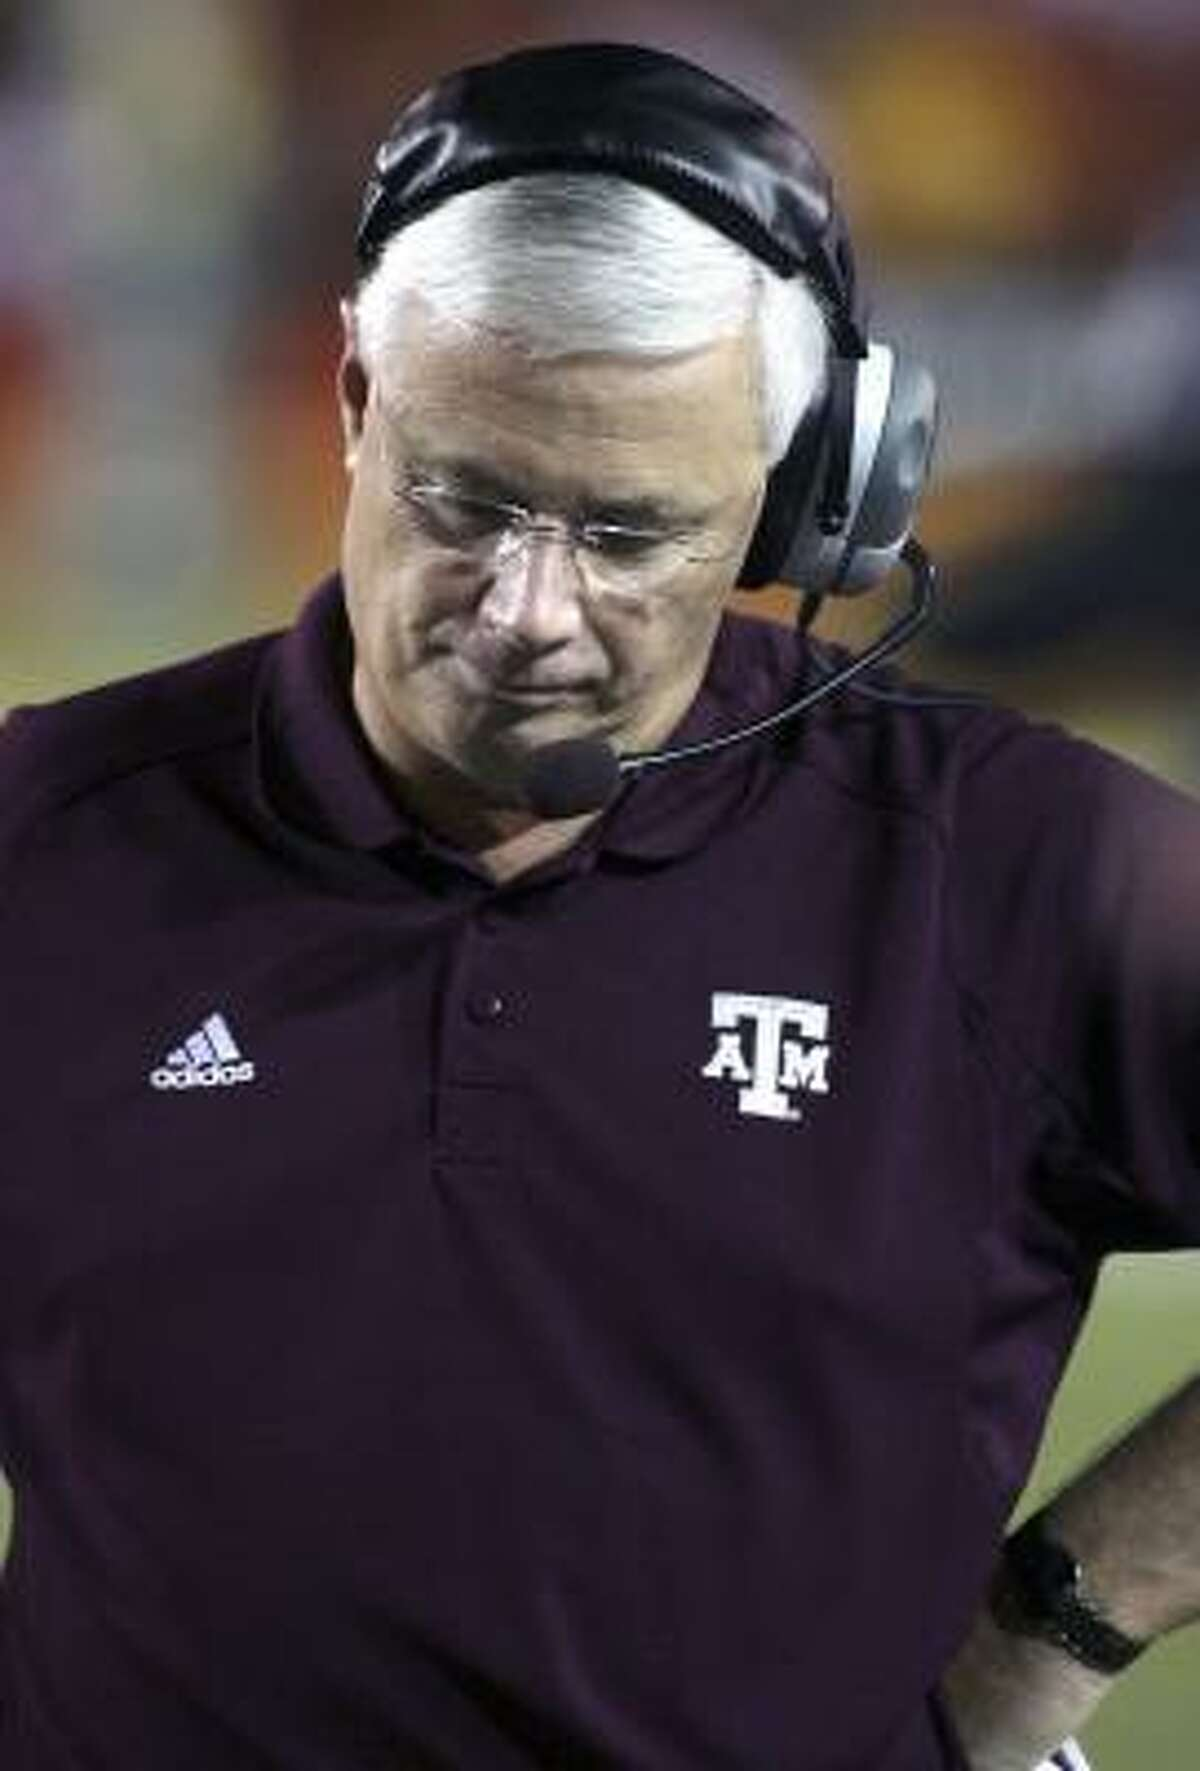 Texas A&M coach Dennis Franchione was upset about a Mike Goodson fumble in the second quarter against Miami, but the evening was only starting to go downhill for the Aggies.